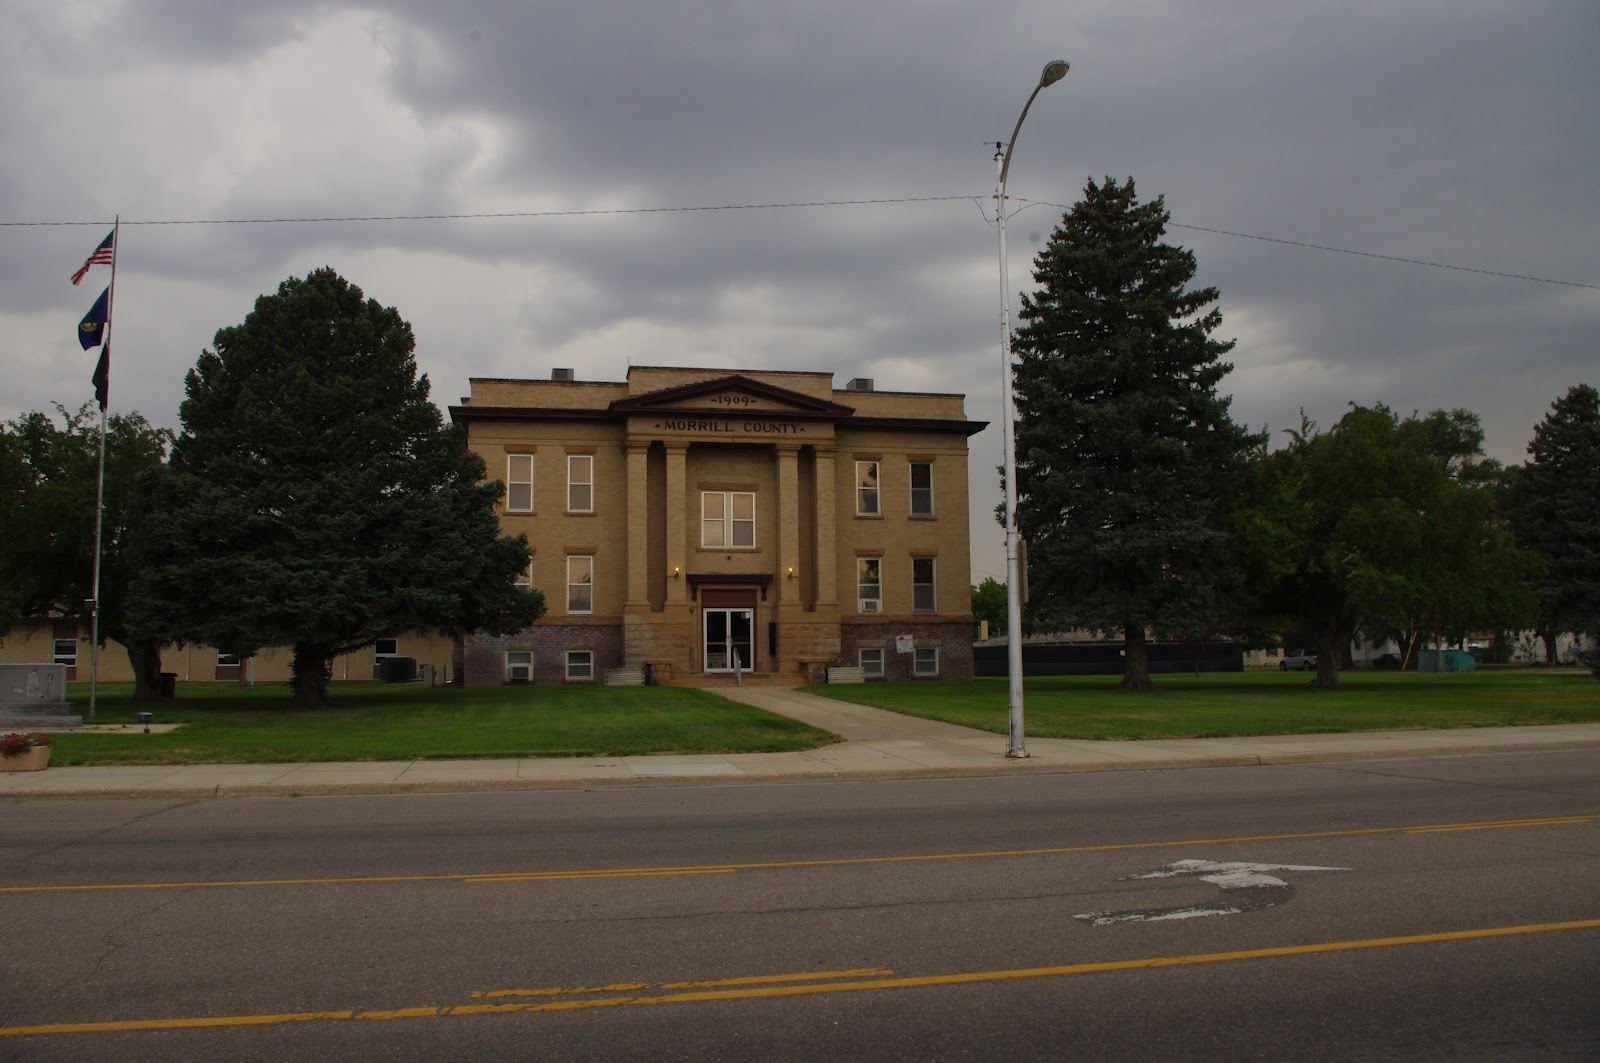 morrill county dating Schools in western nebraskamorrill, scottsbluff etc (4 replies) latest news from scottsbluff the number of natural disasters in scotts bluff county (5.